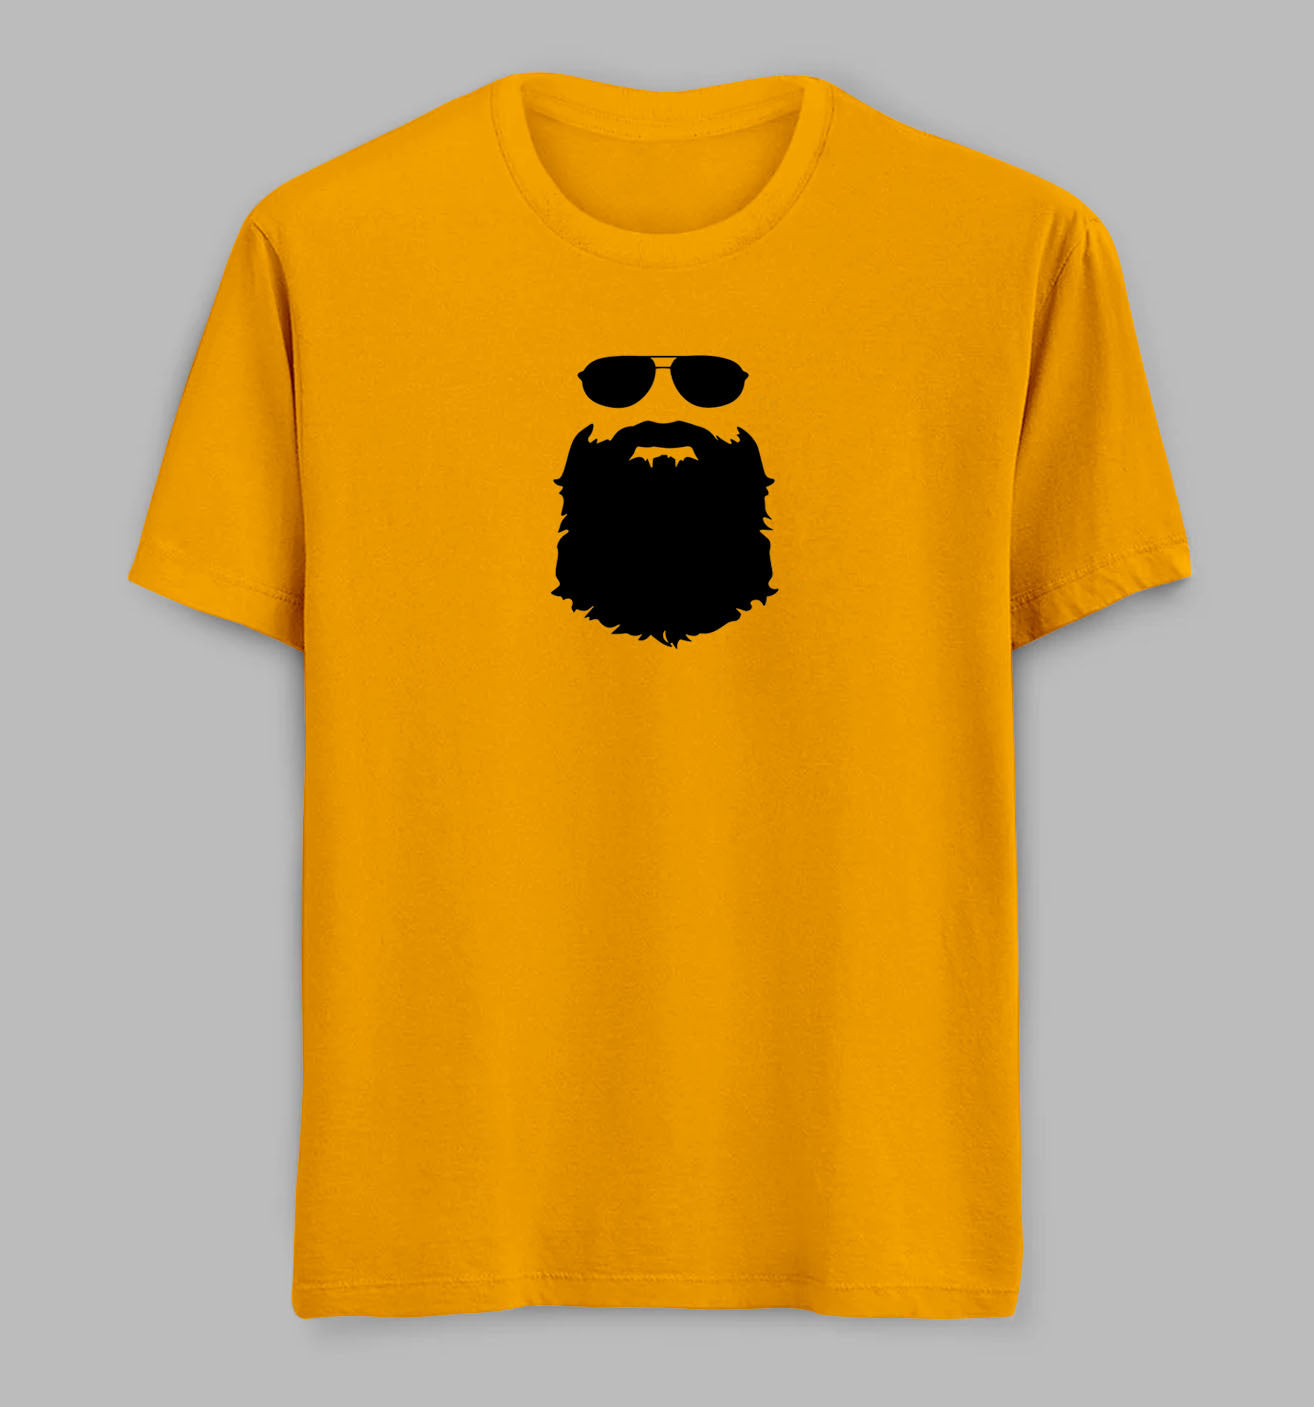 Bearded Man Tees/ Tshirts